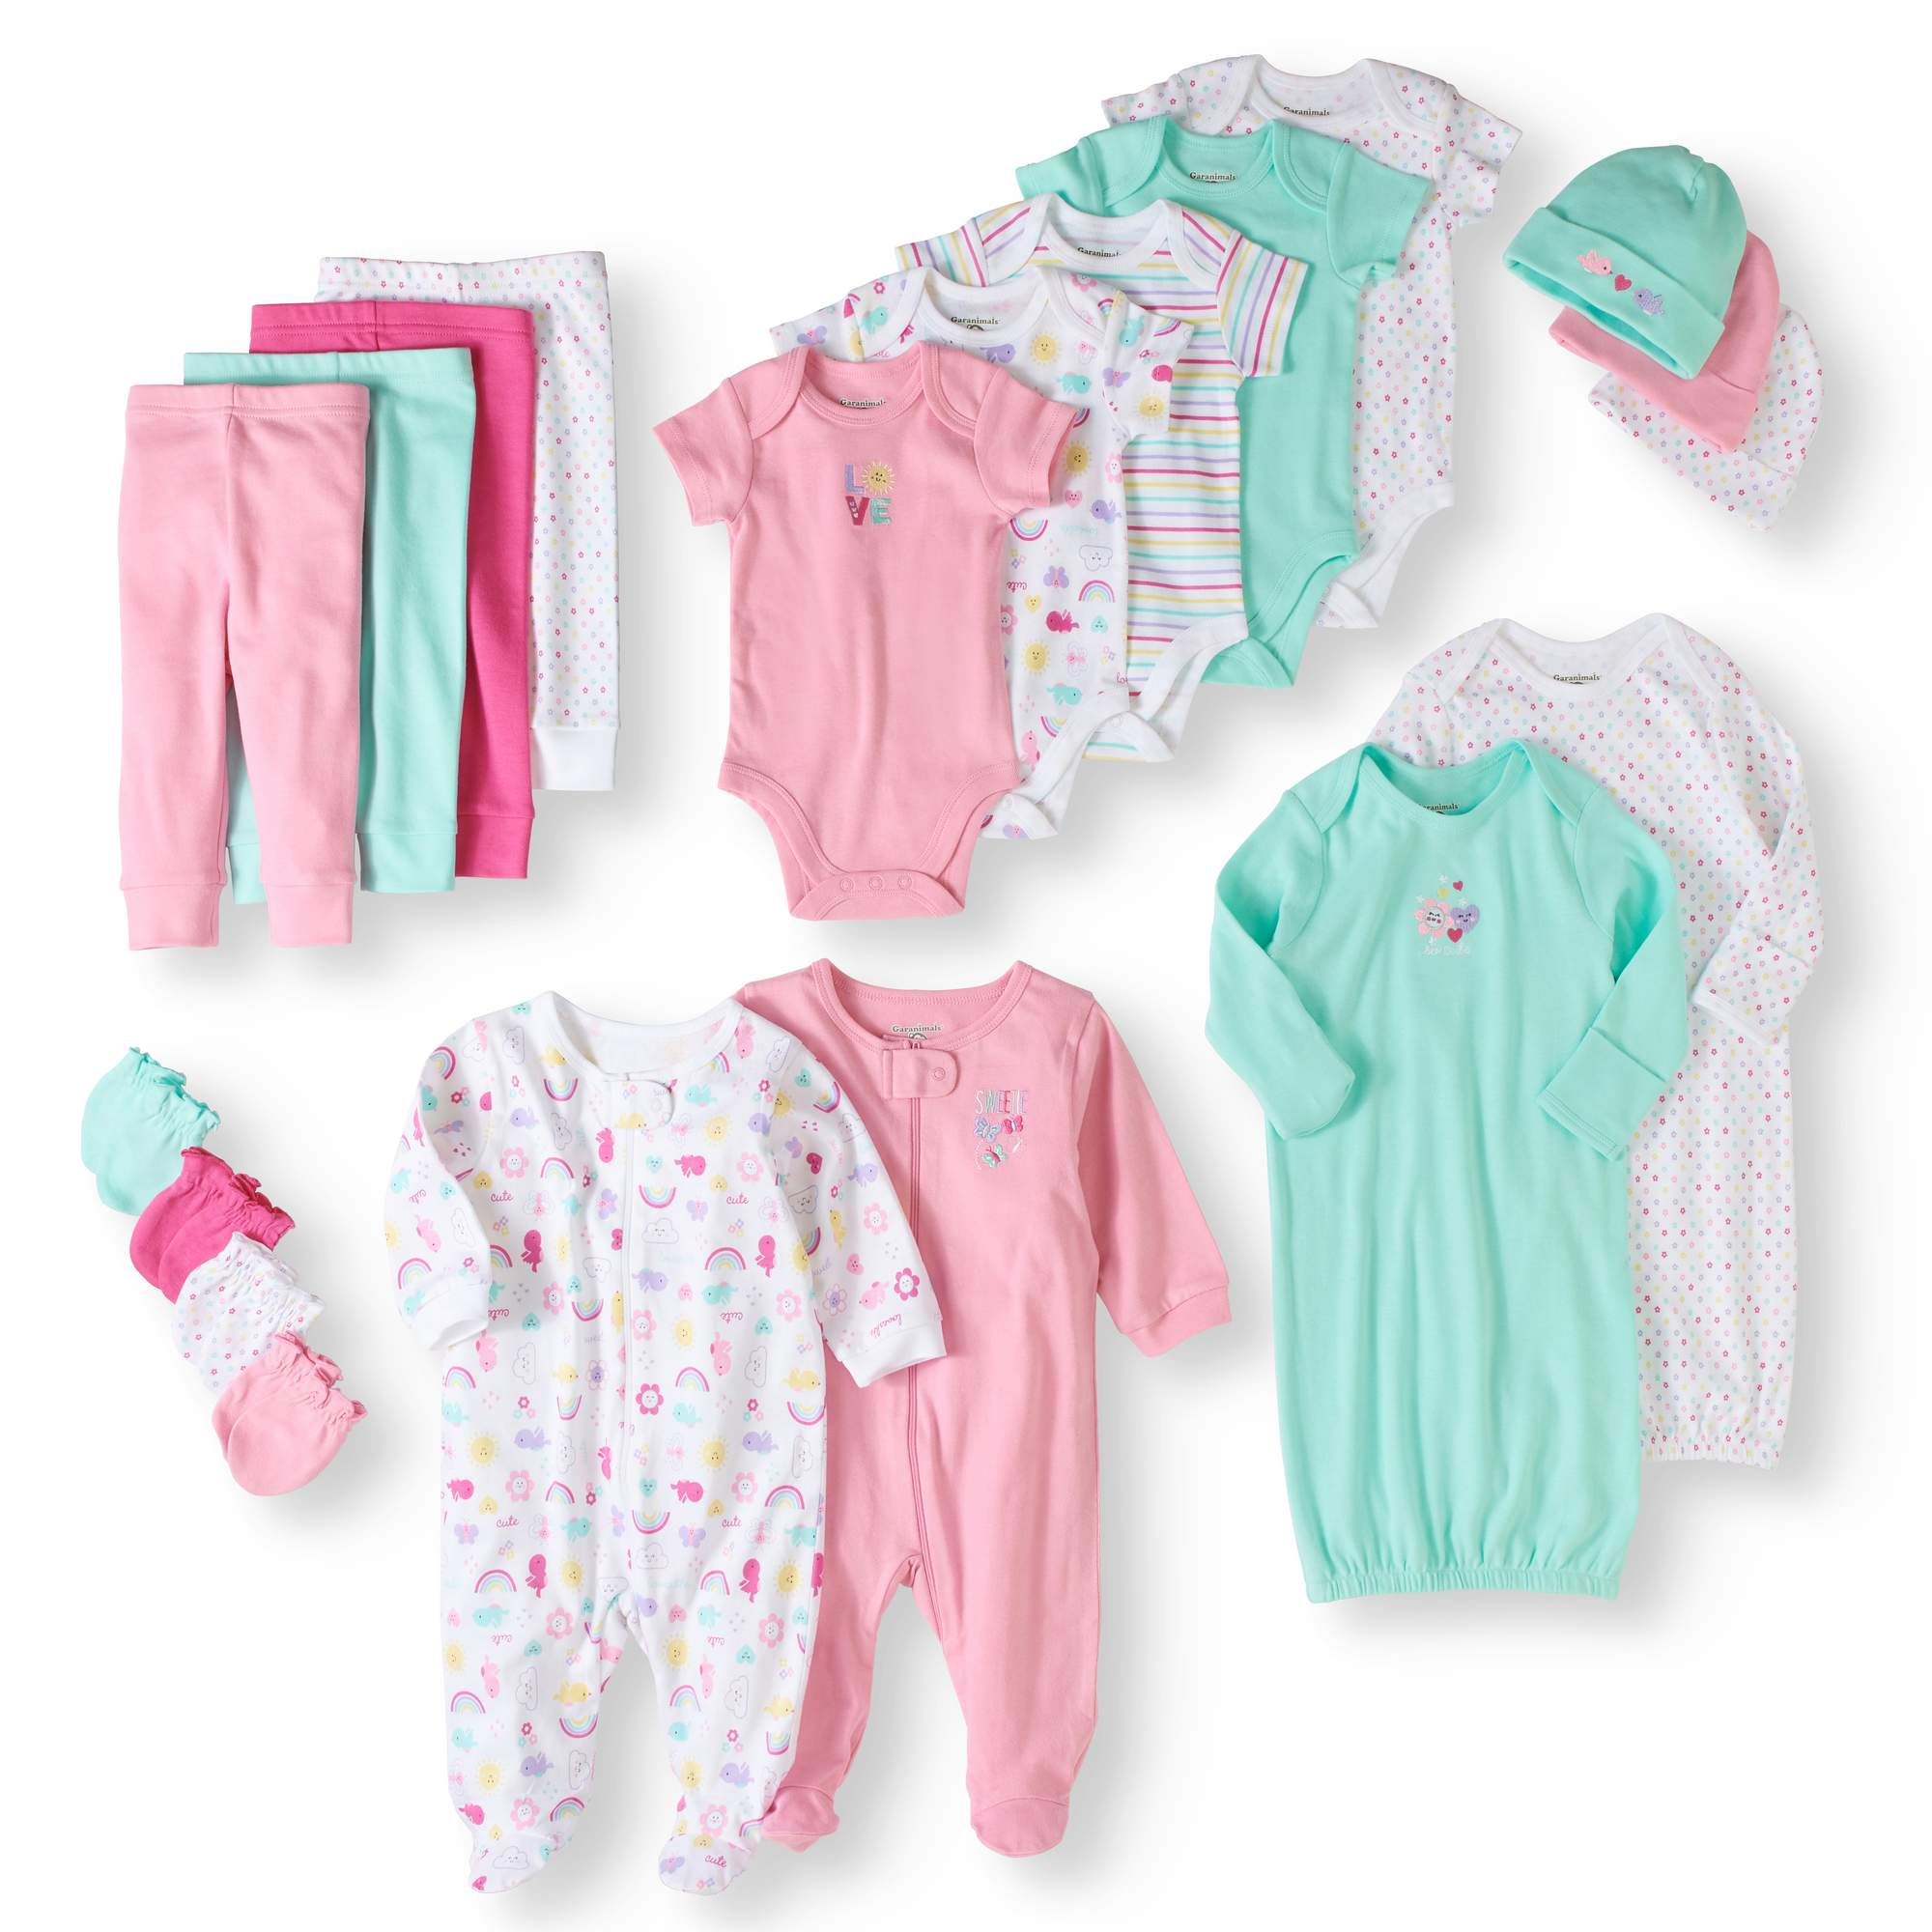 Baby Sleeper  Garanimals NWT